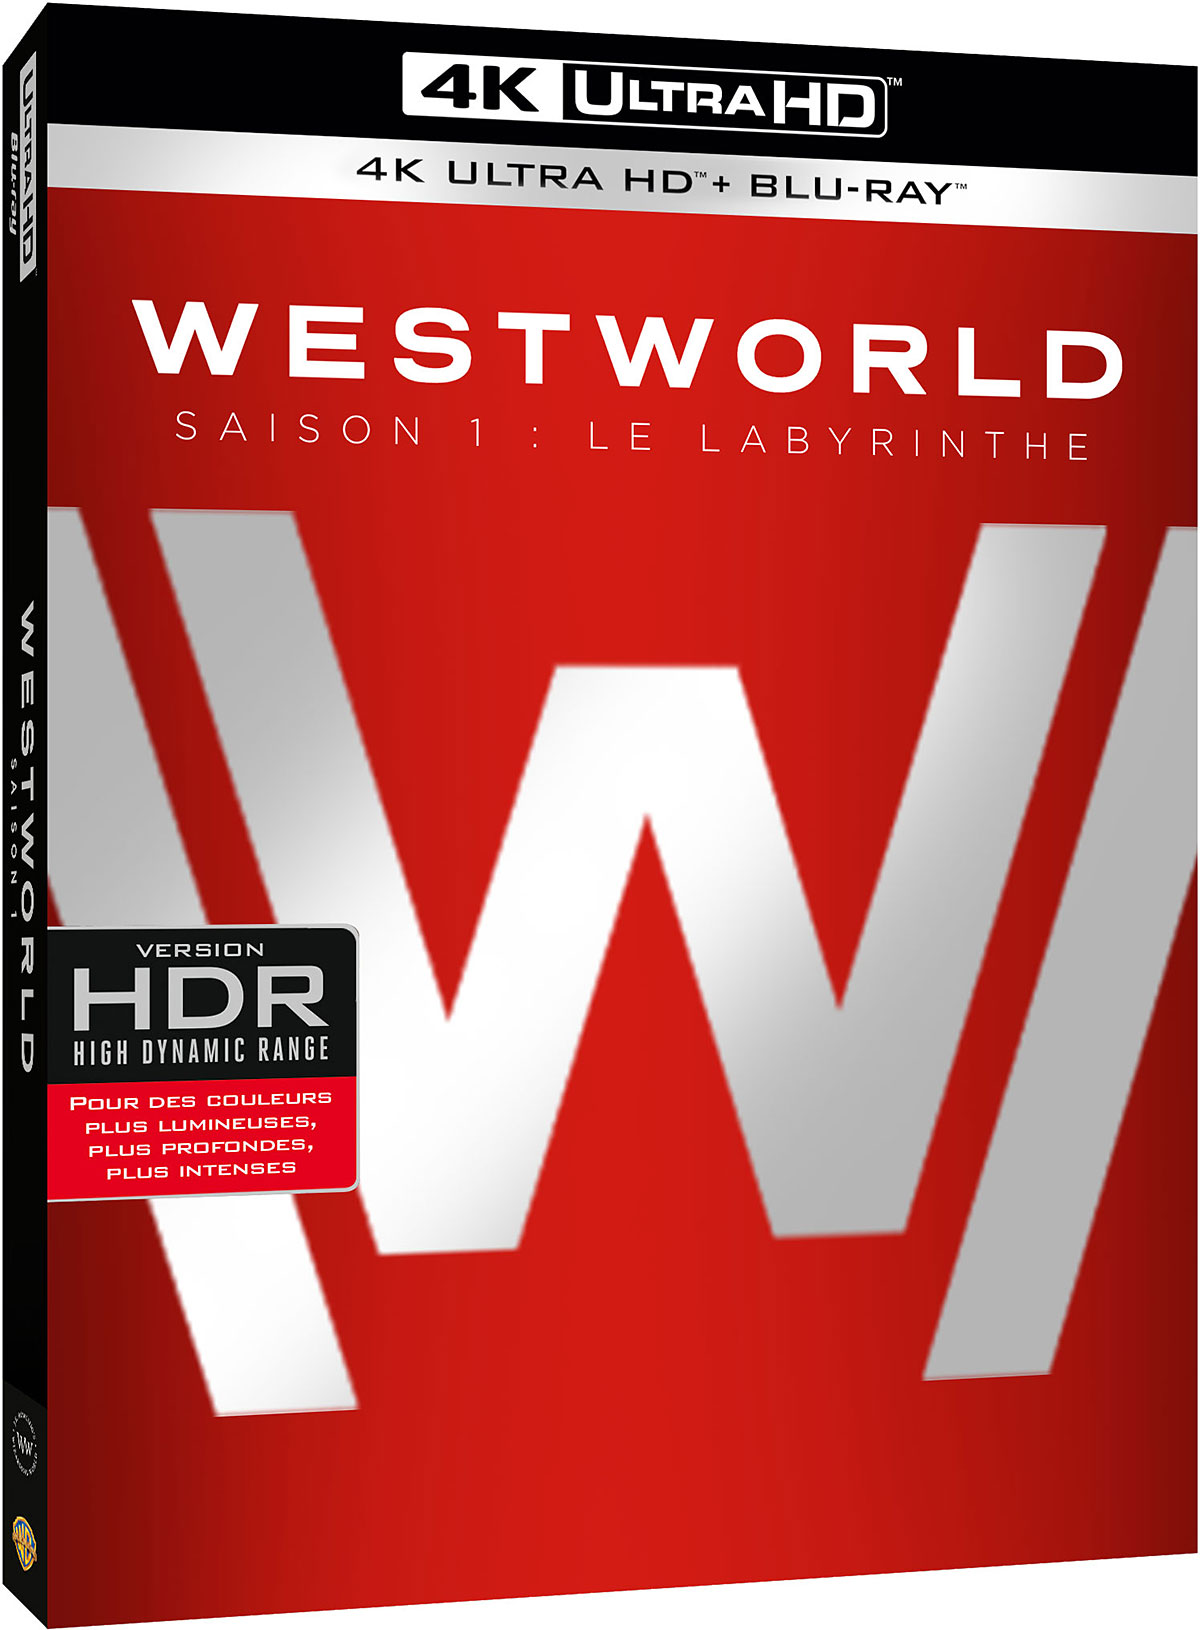 Westworld - Saison 1 : Le Labyrinthe - 4K Ultra HD + Blu-ray